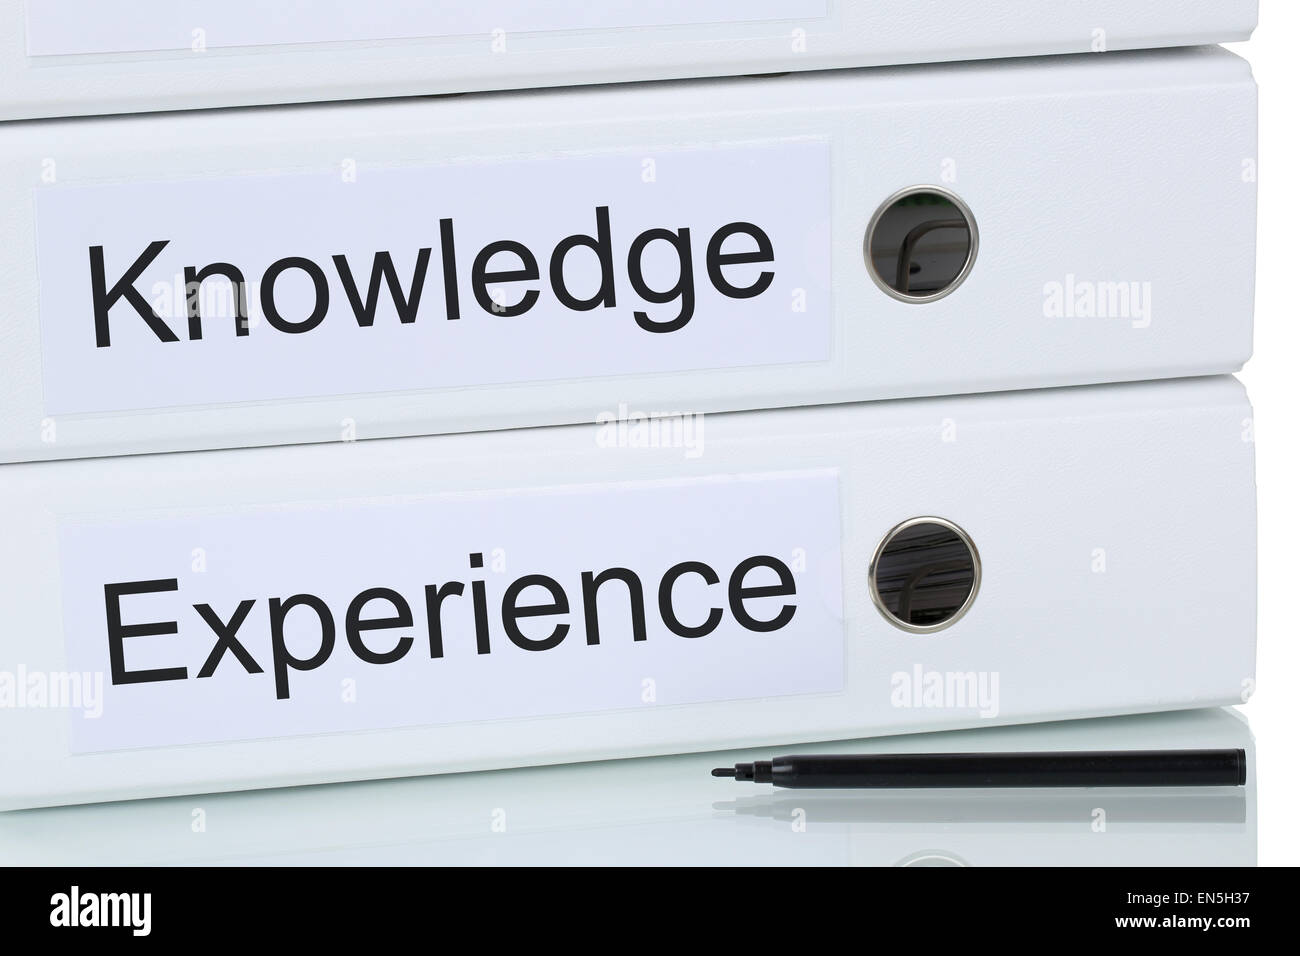 With successful knowledge and experience to success business concept - Stock Image